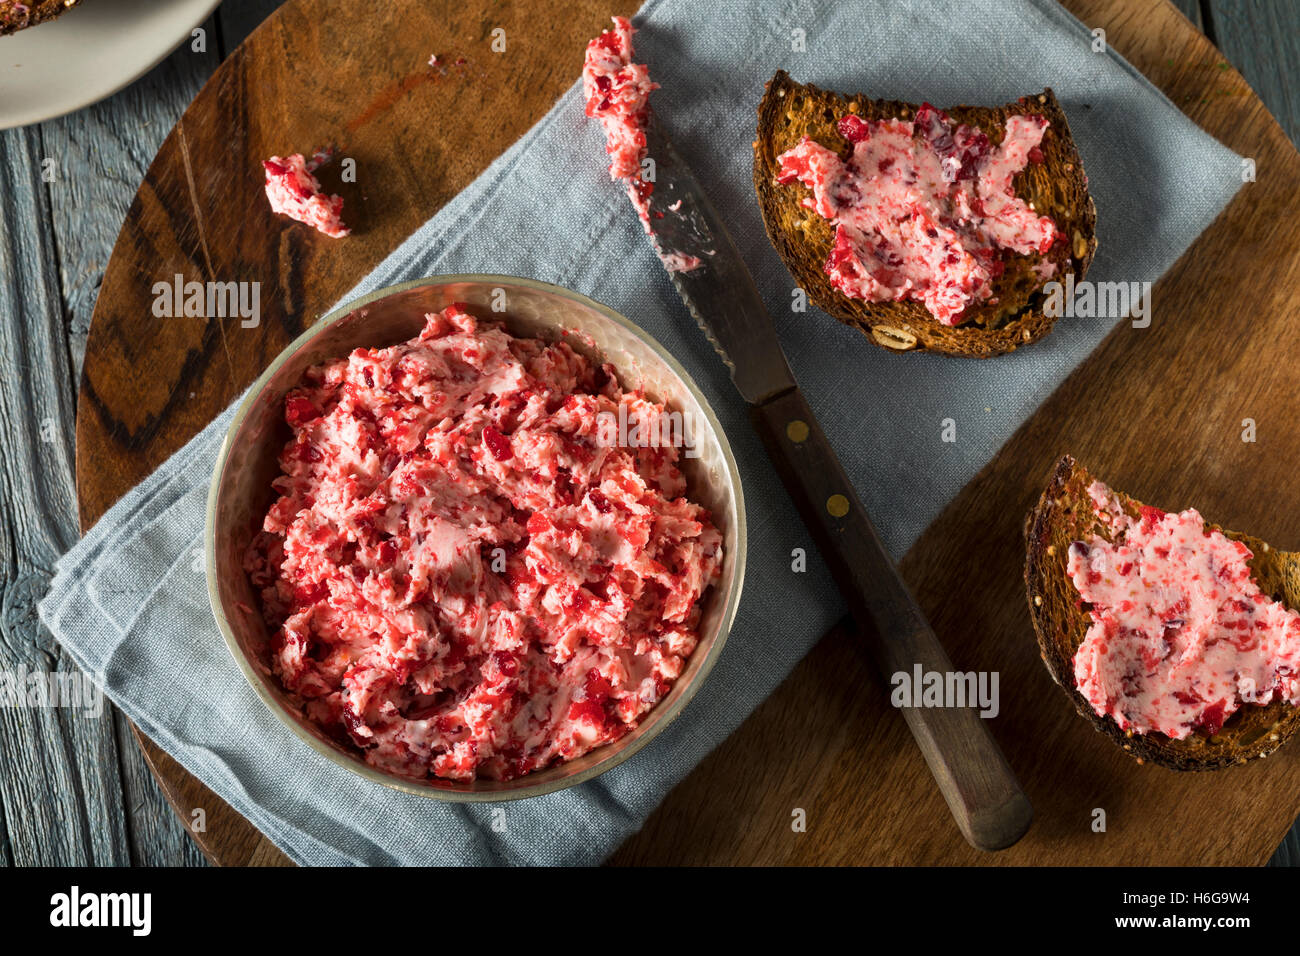 Fresh Homemade Cranberry Butter Spread with Bread - Stock Image